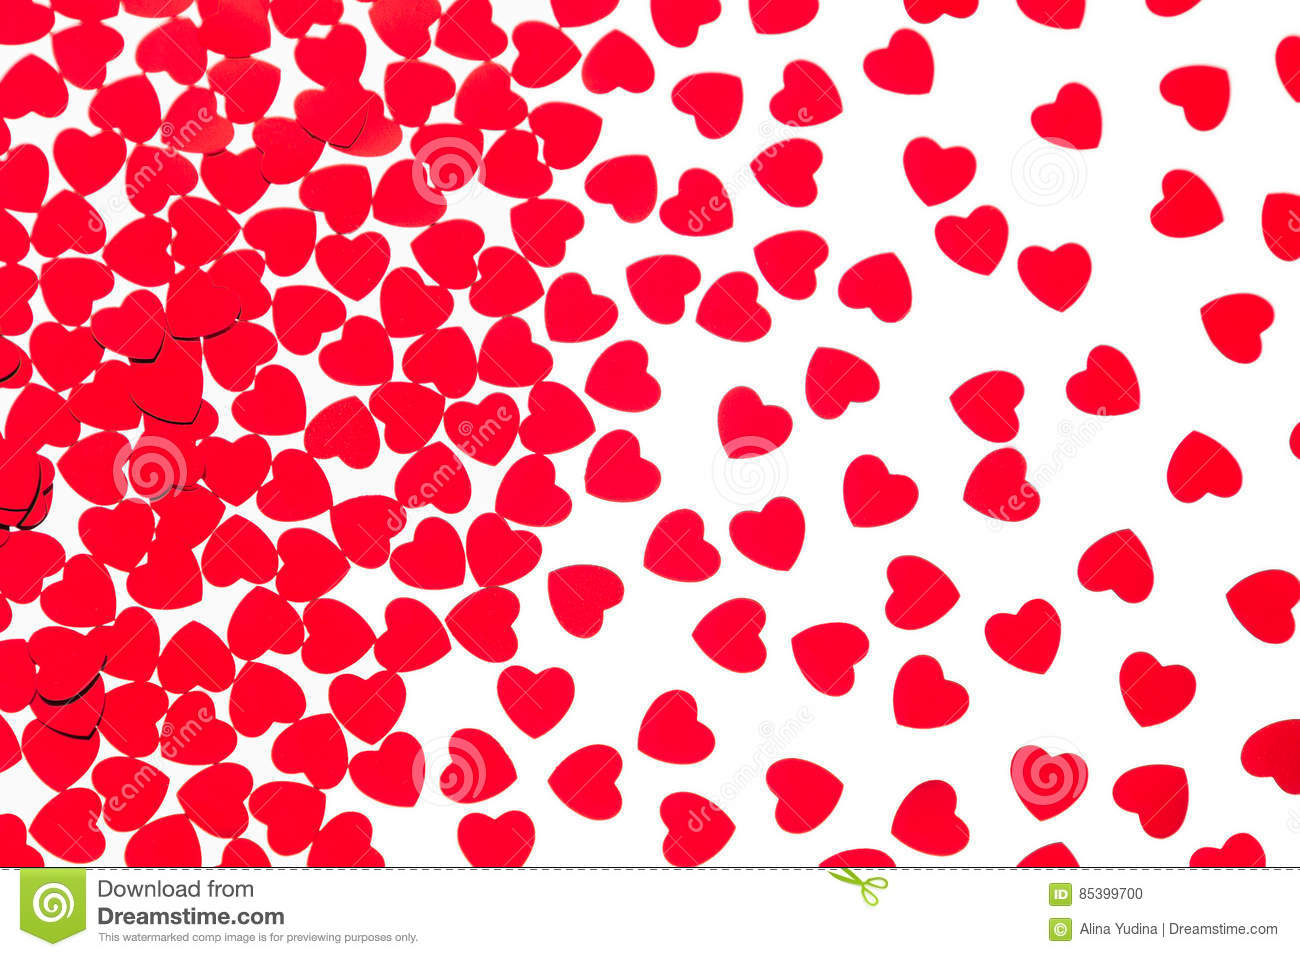 Valentine`s day decorative pattern red hearts confetti isolated on white background.